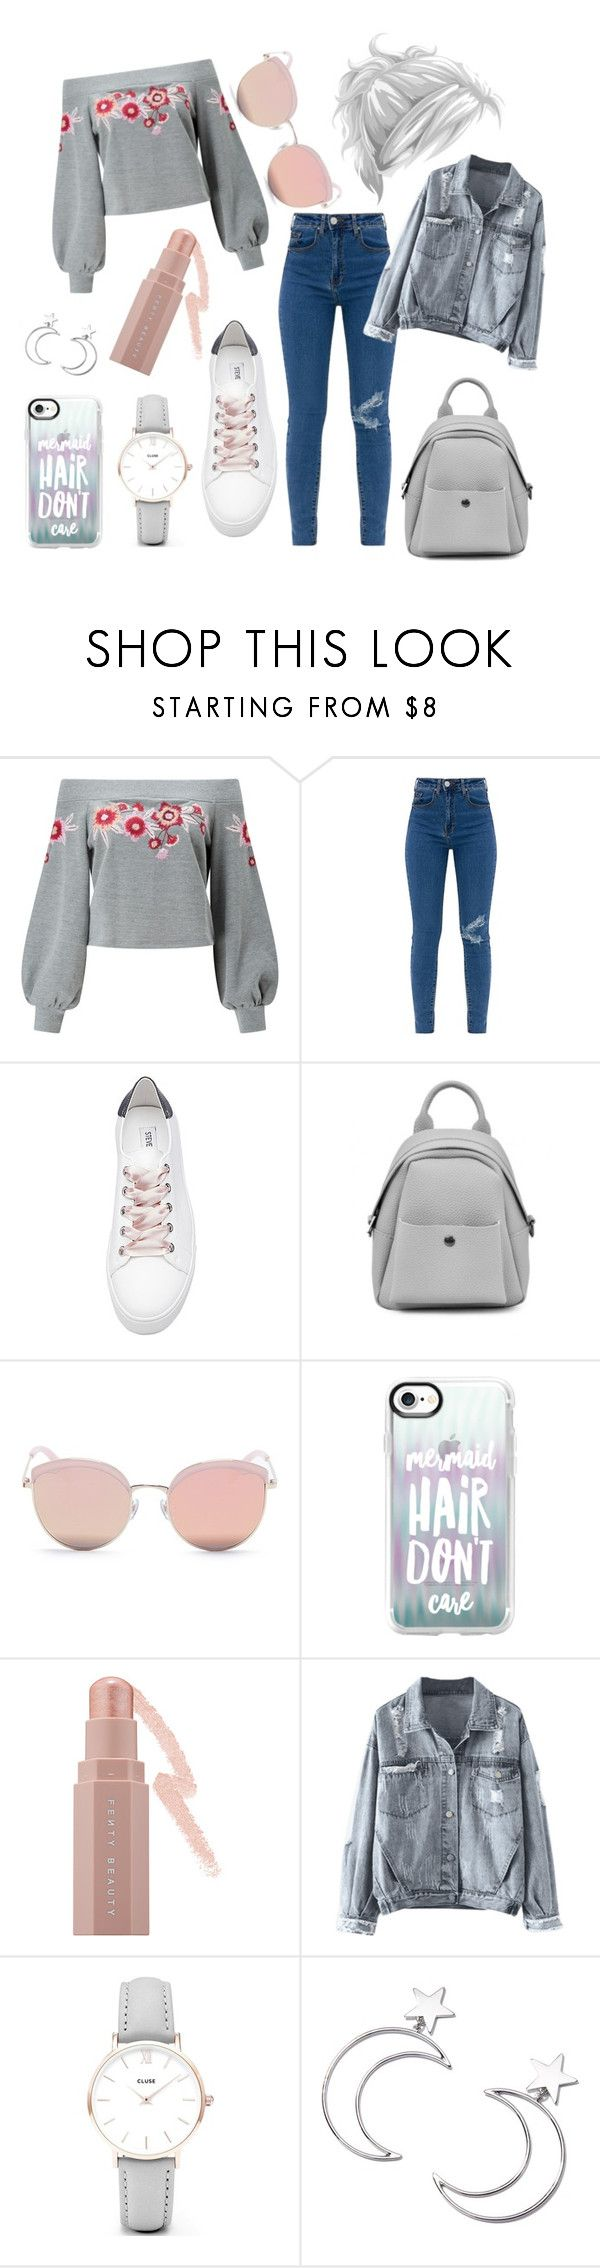 """Untitled #329"" by inesgenebra on Polyvore featuring Miss Selfridge, Steve Madden, Stephane + Christian, Casetify, Puma, CLUSE and Ana Accessories"